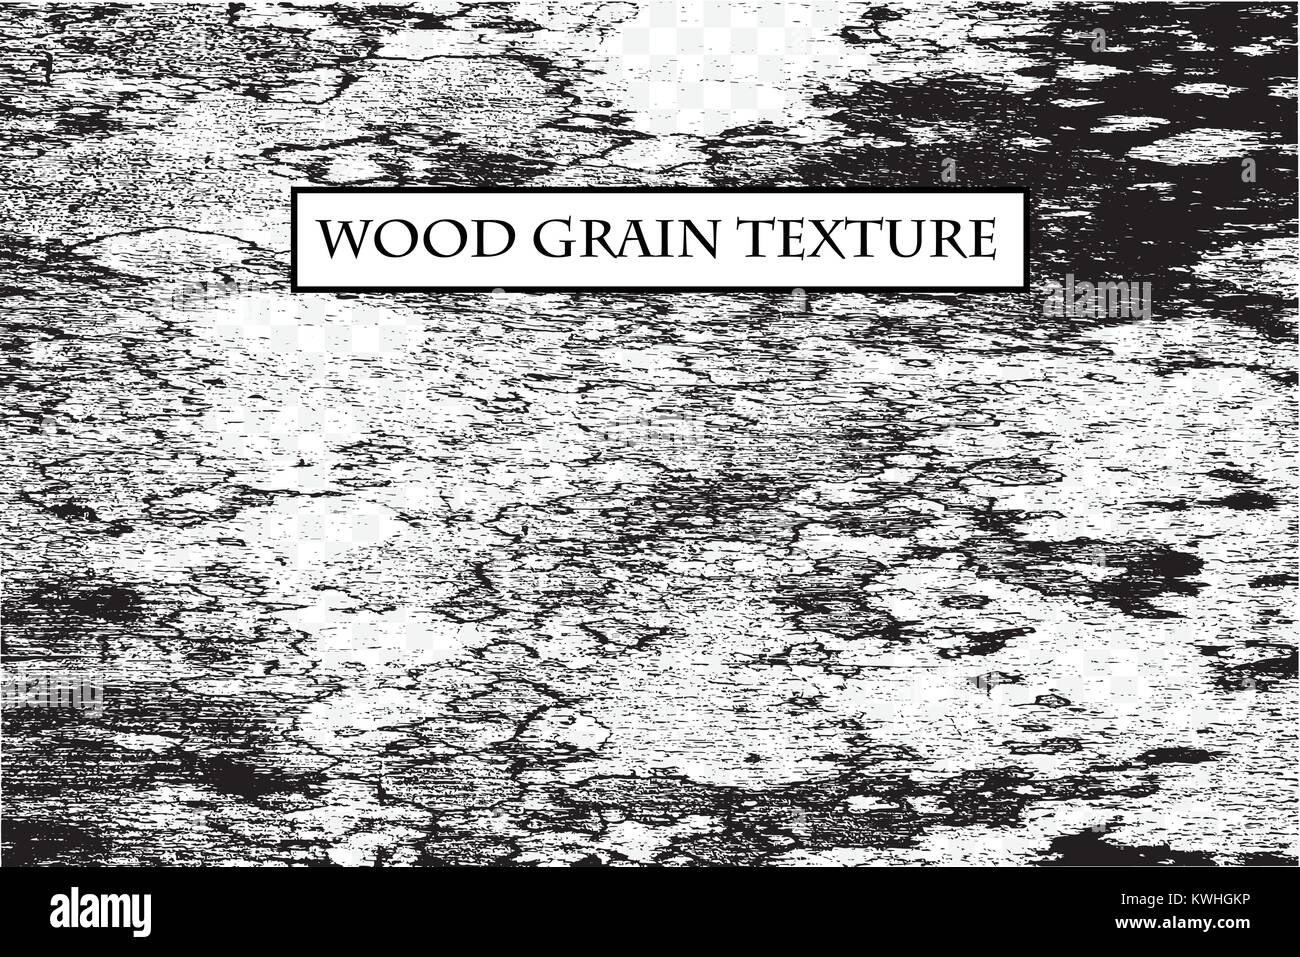 Wood Grain Texture Vector Use Us Wooden Texture Background Stock